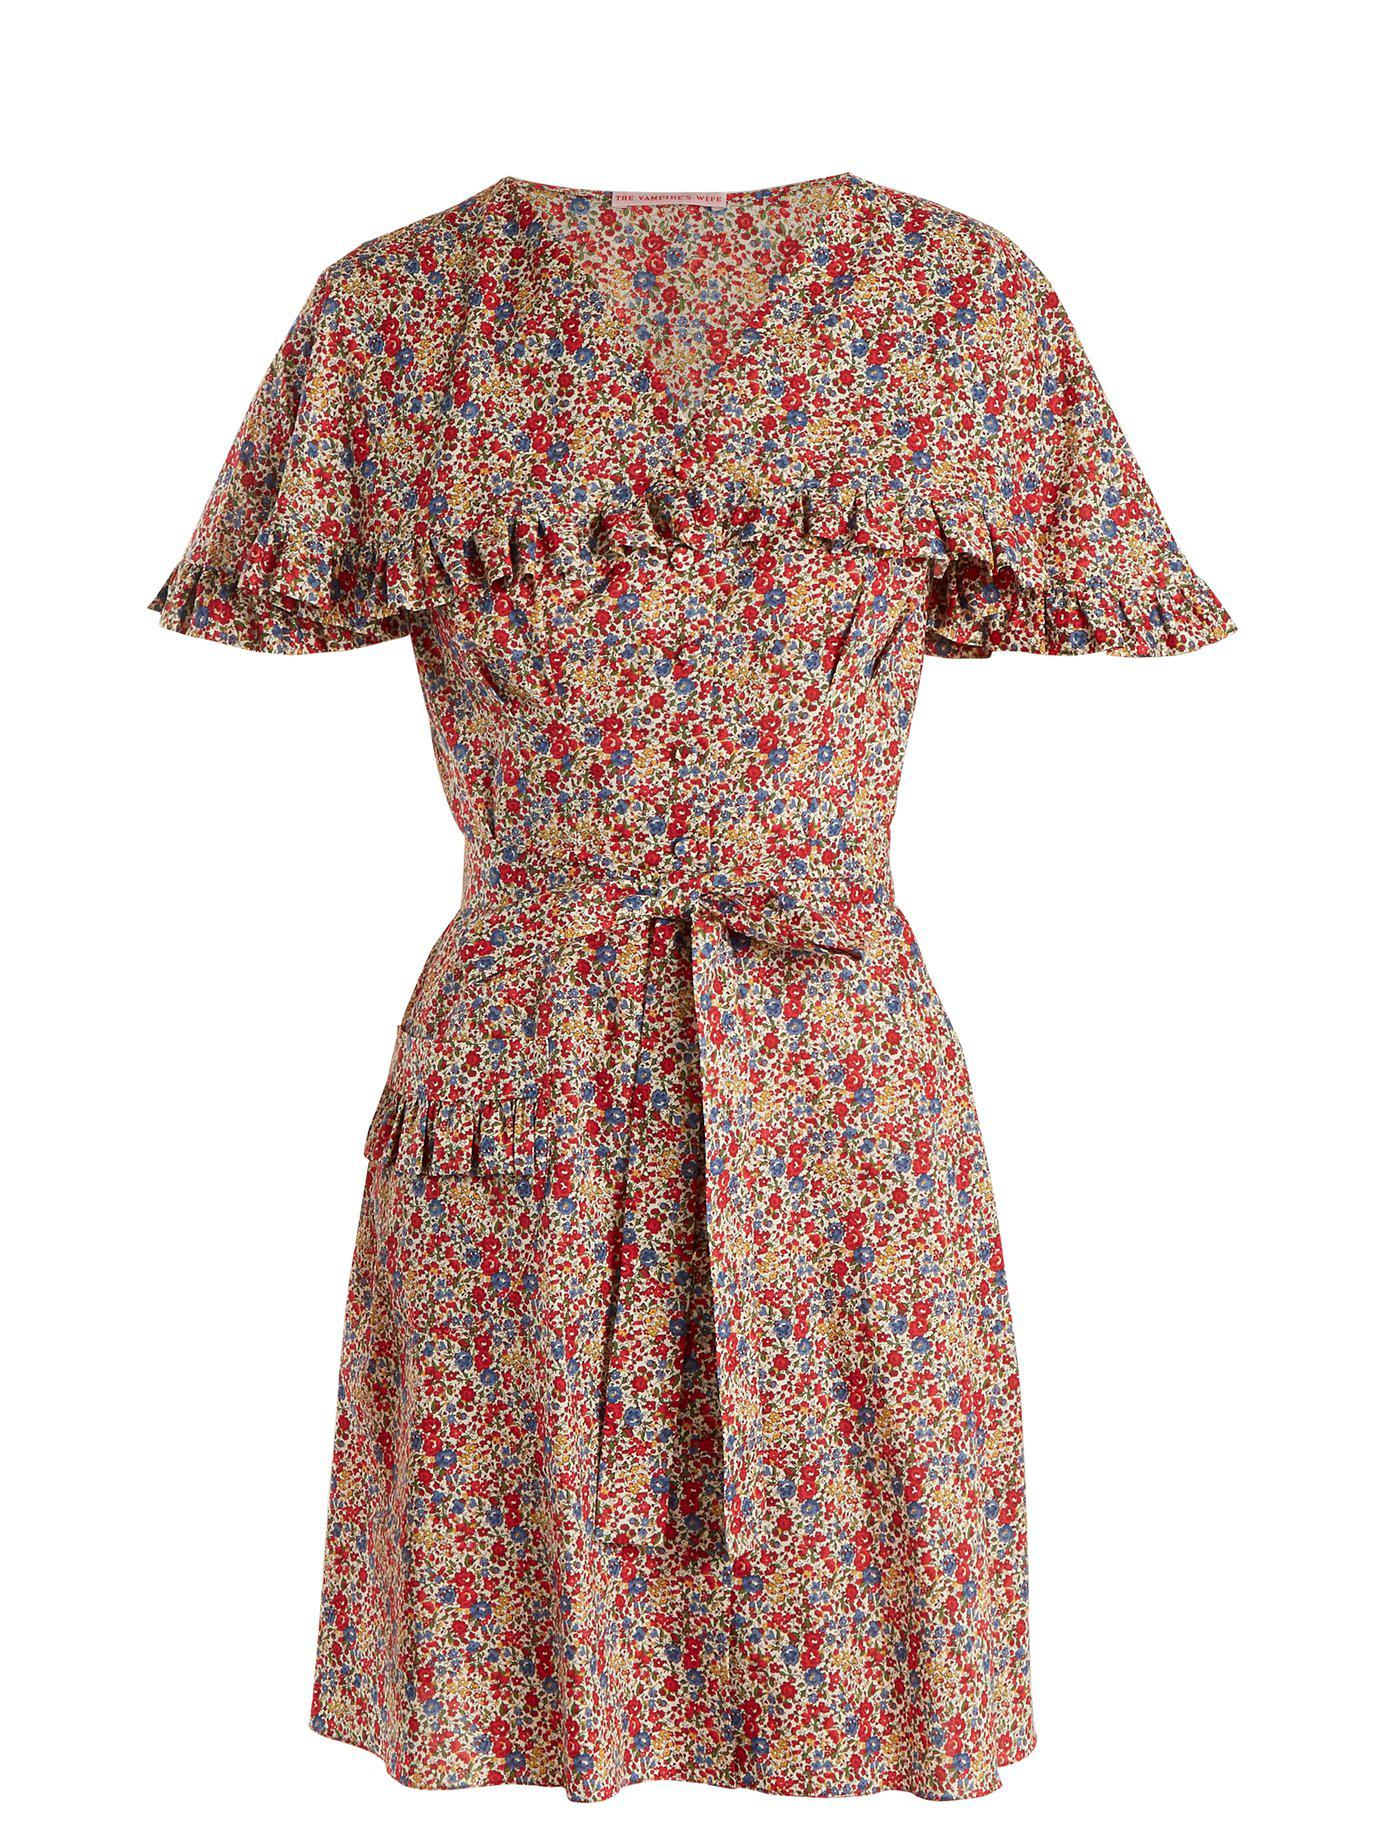 Charlotte Liberty floral-print cotton dress The Vampires Wife NK9oCRc